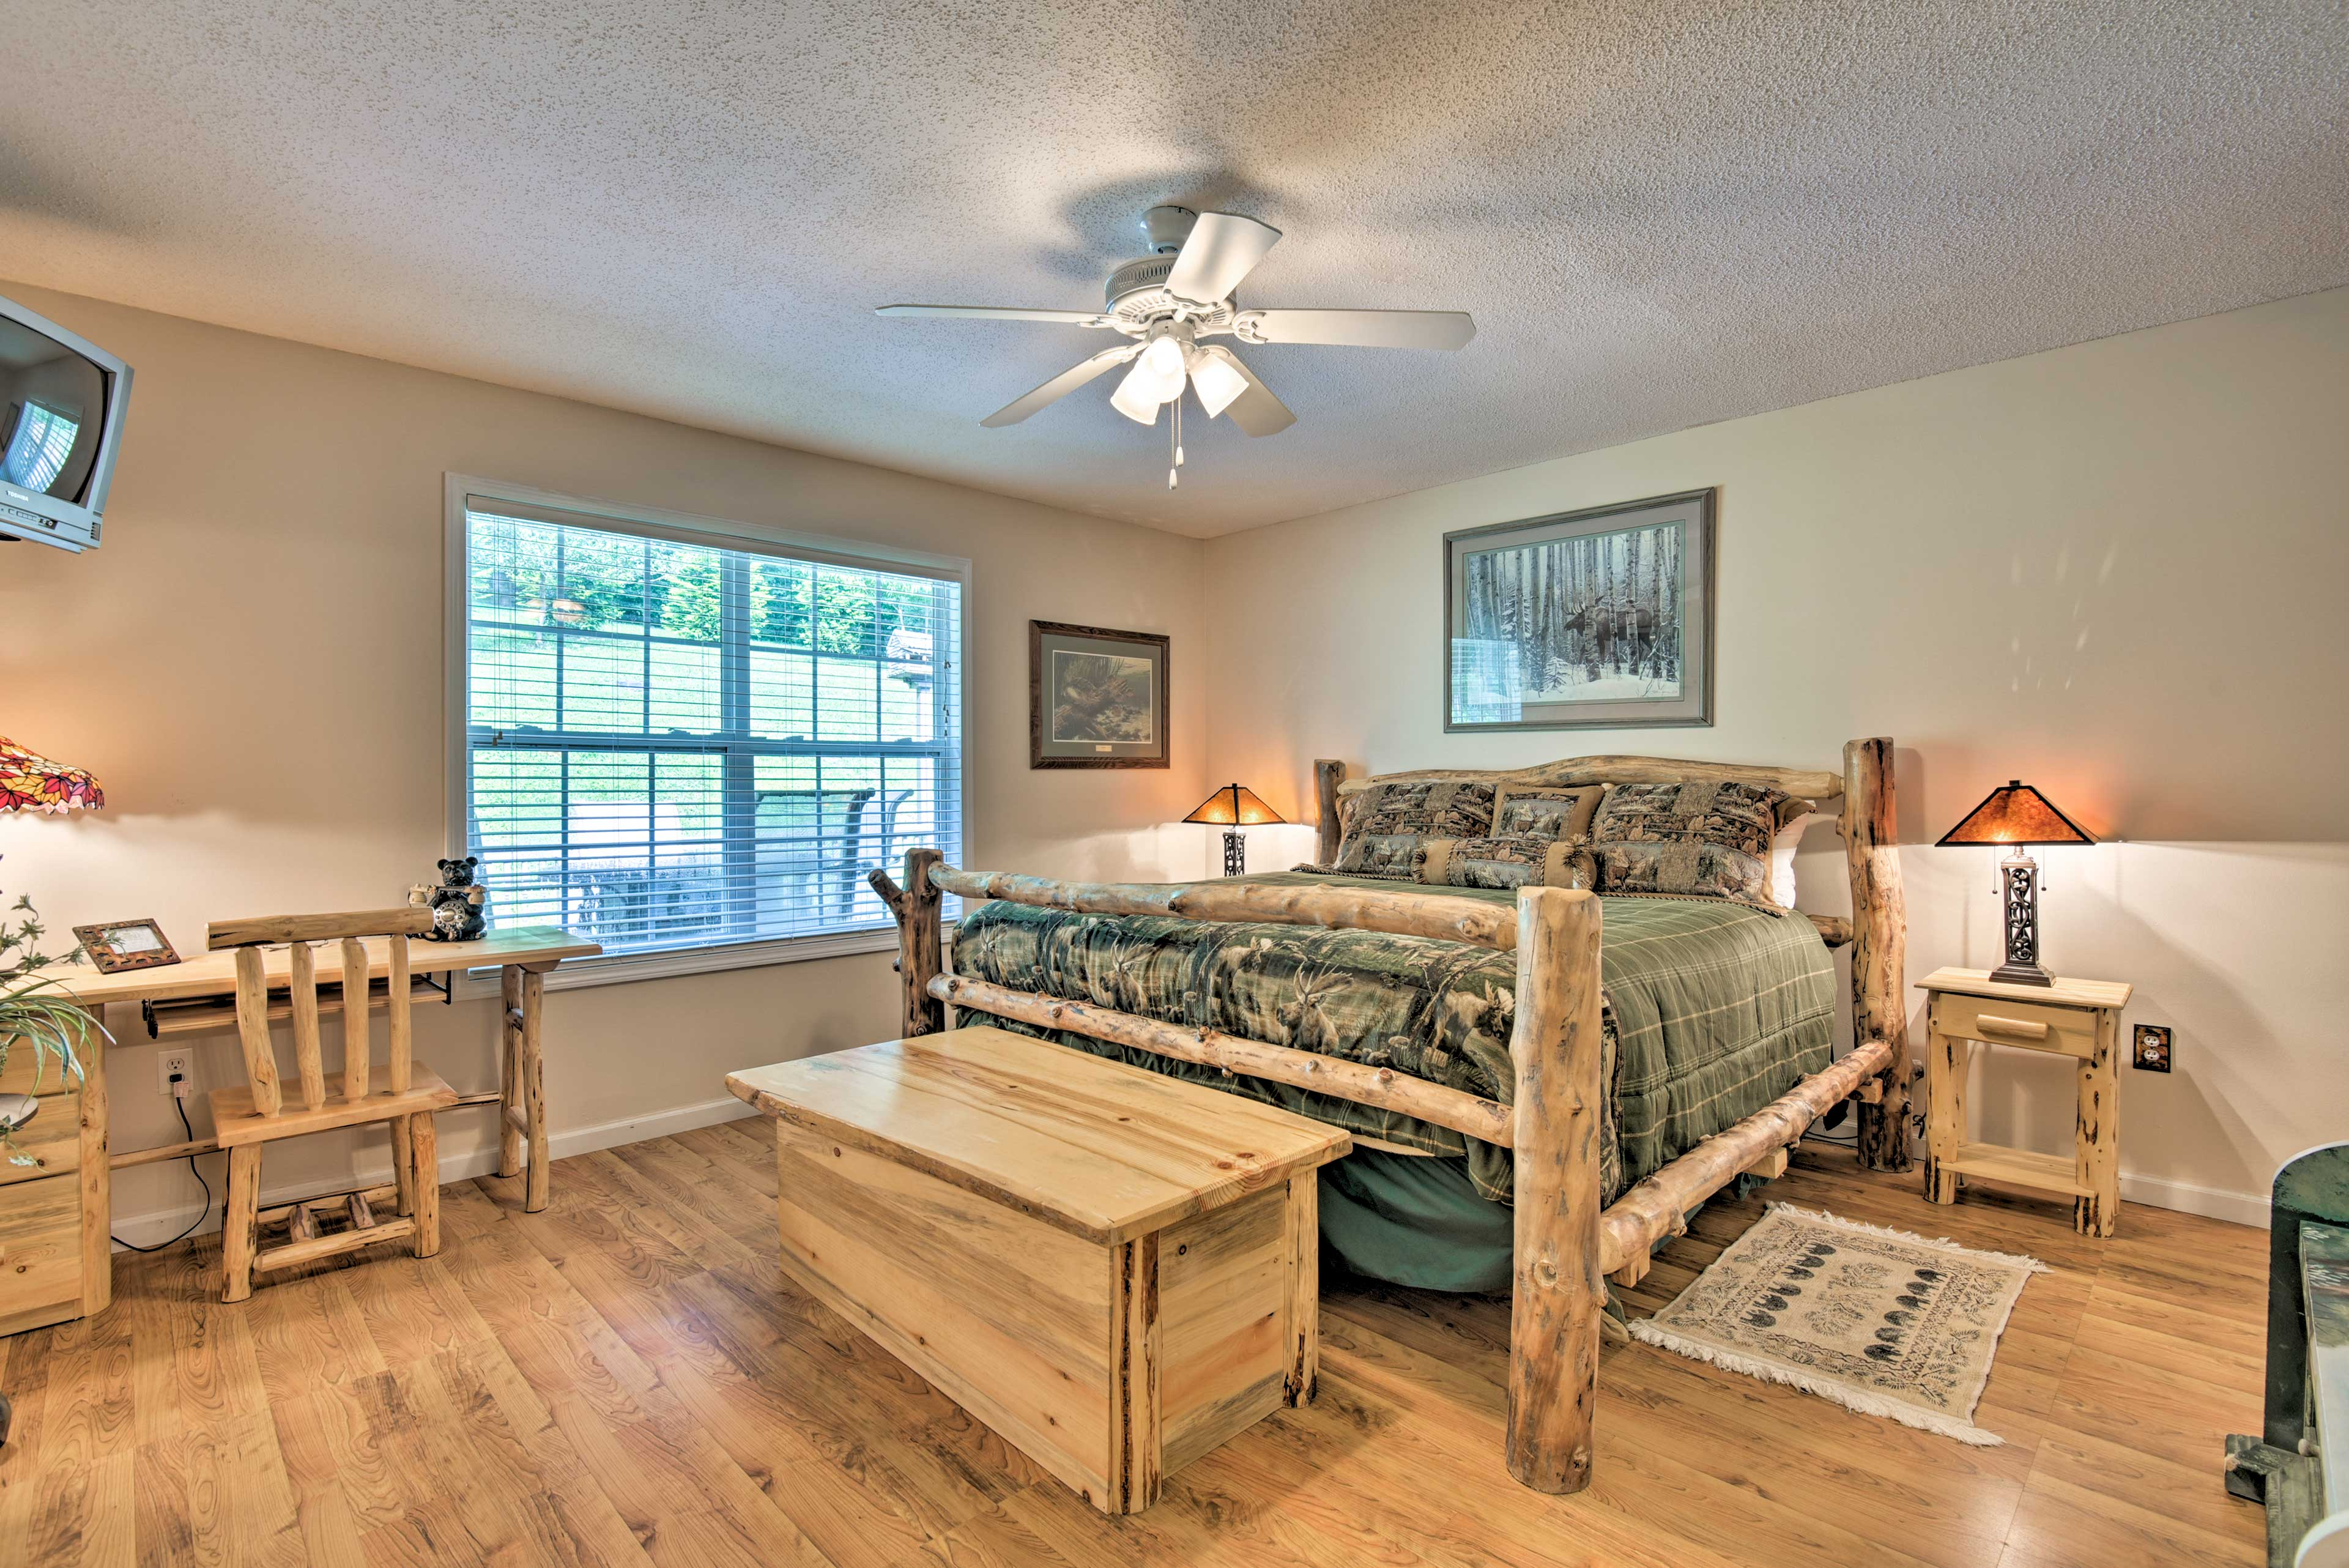 The master bedroom has a king bed and Smart TV.